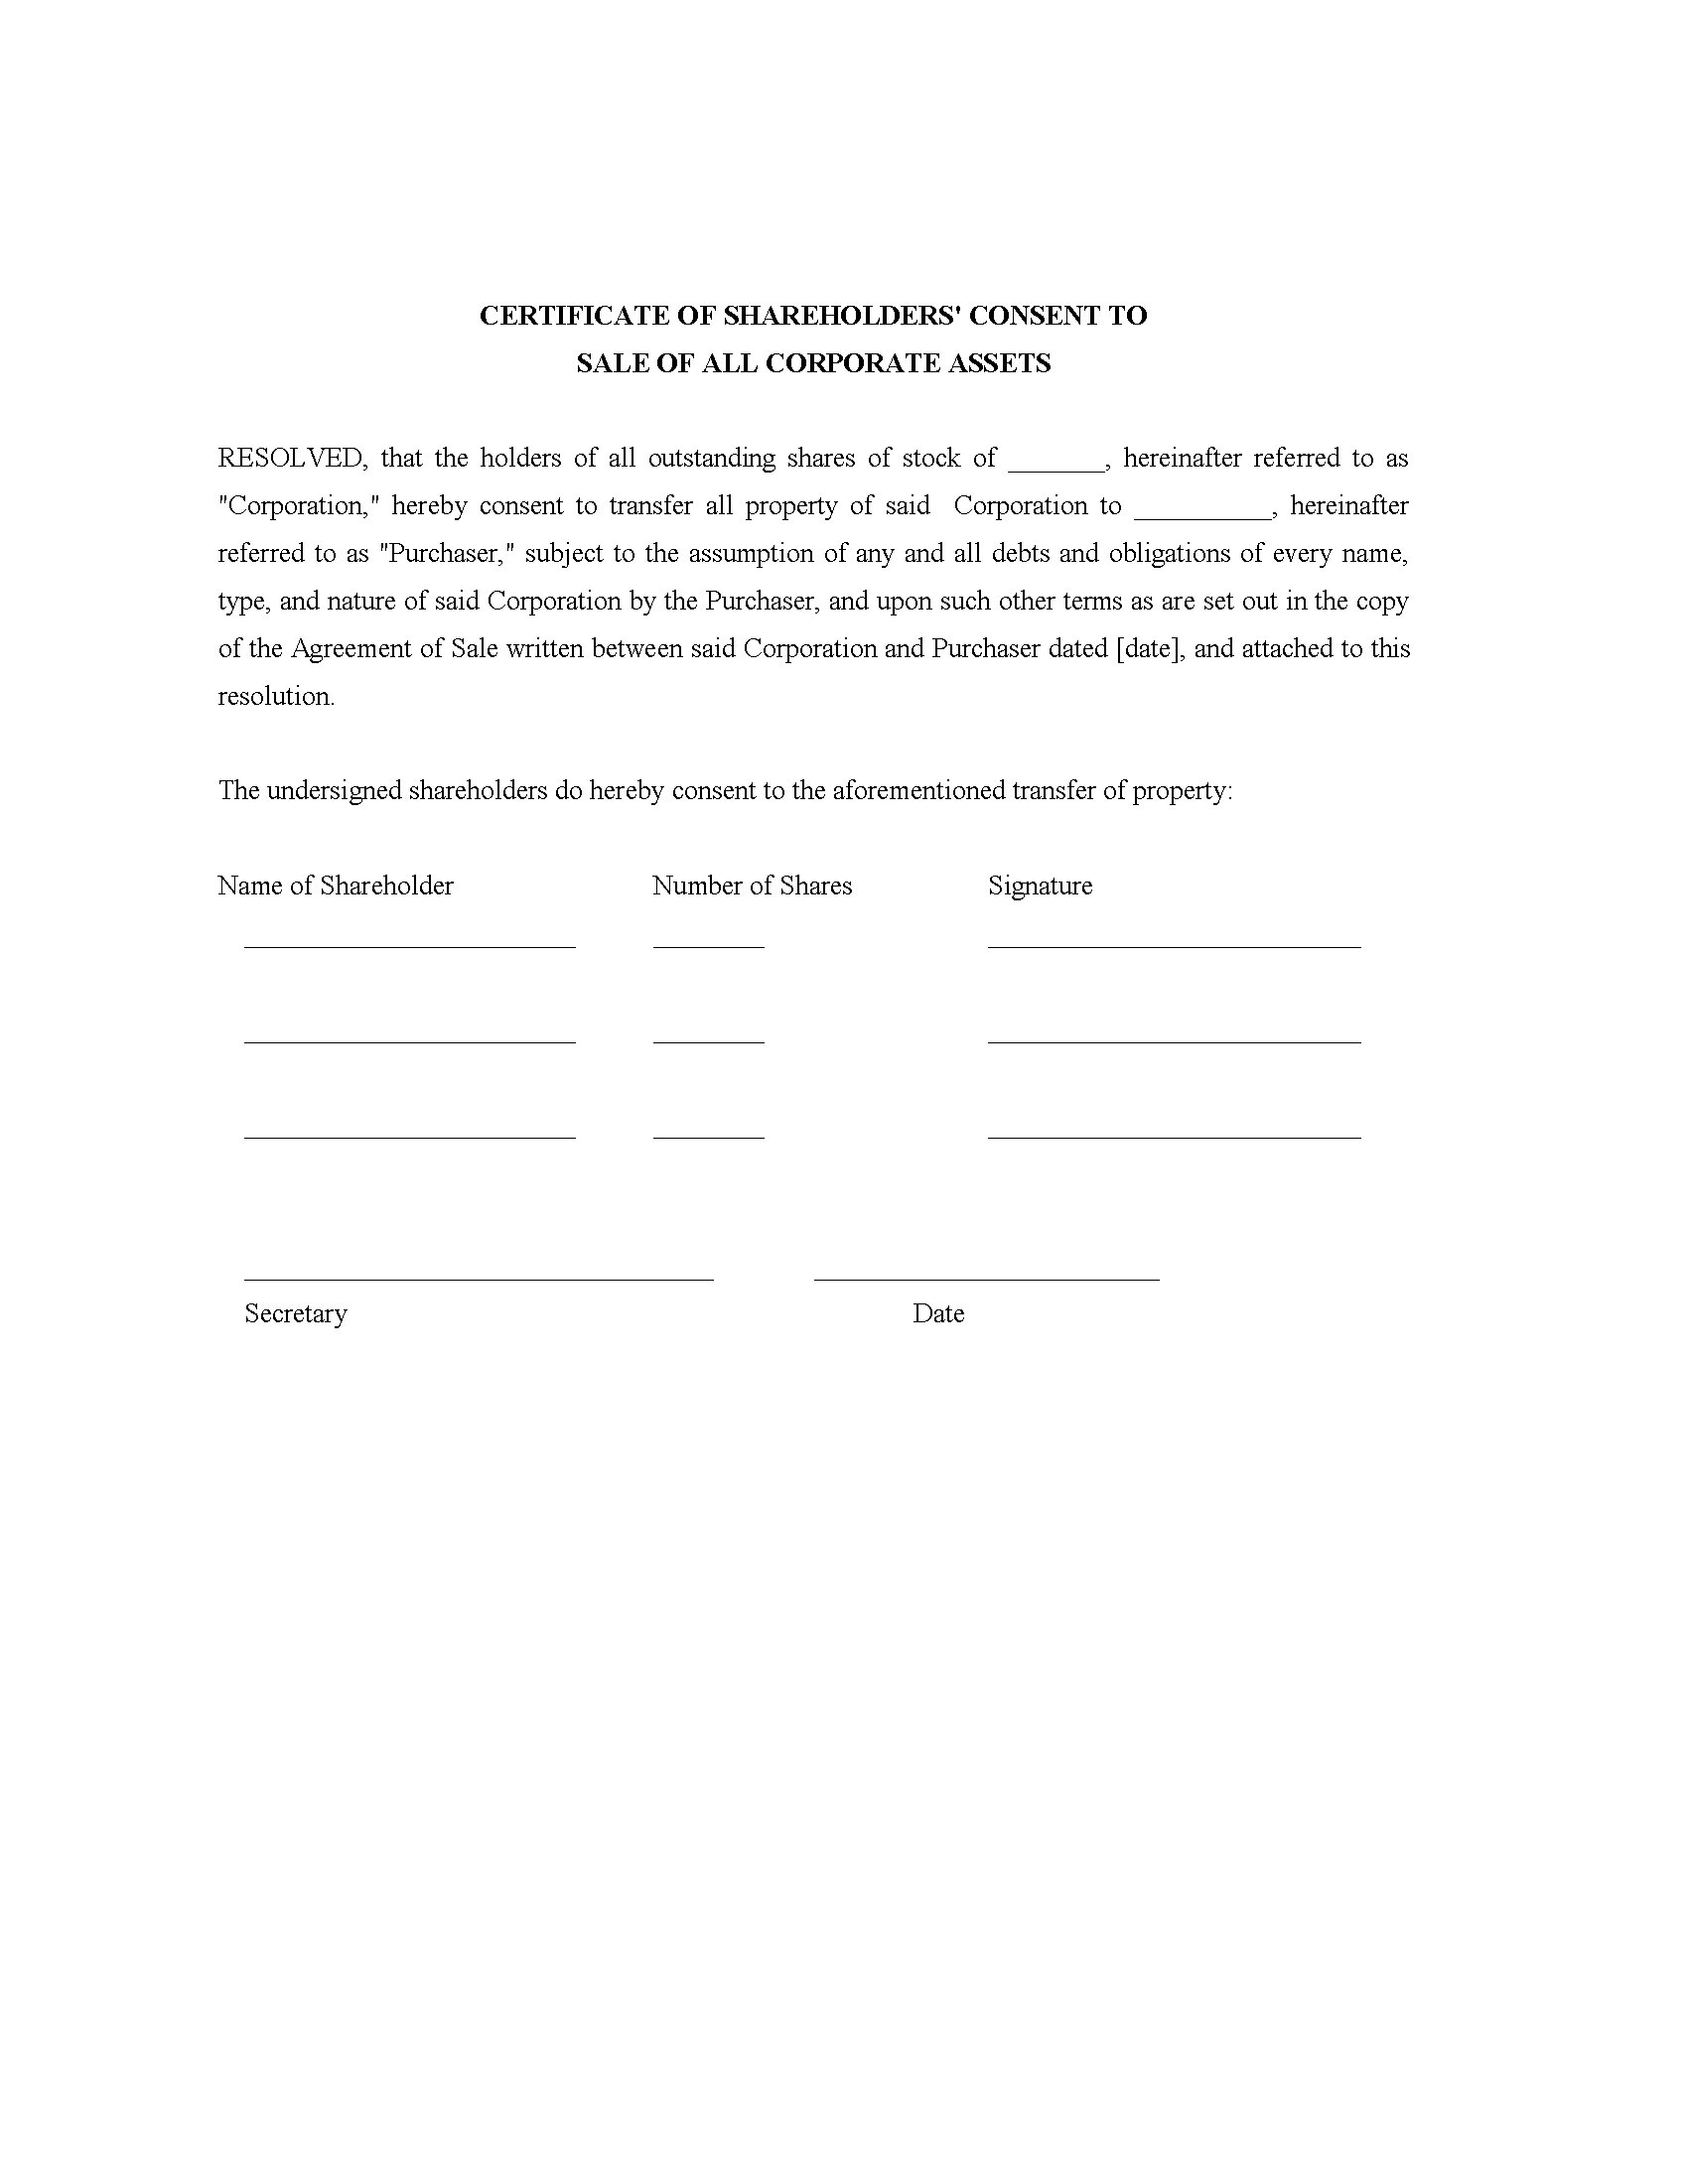 Certificate Of Shareholder Consent To Sale Of Assets